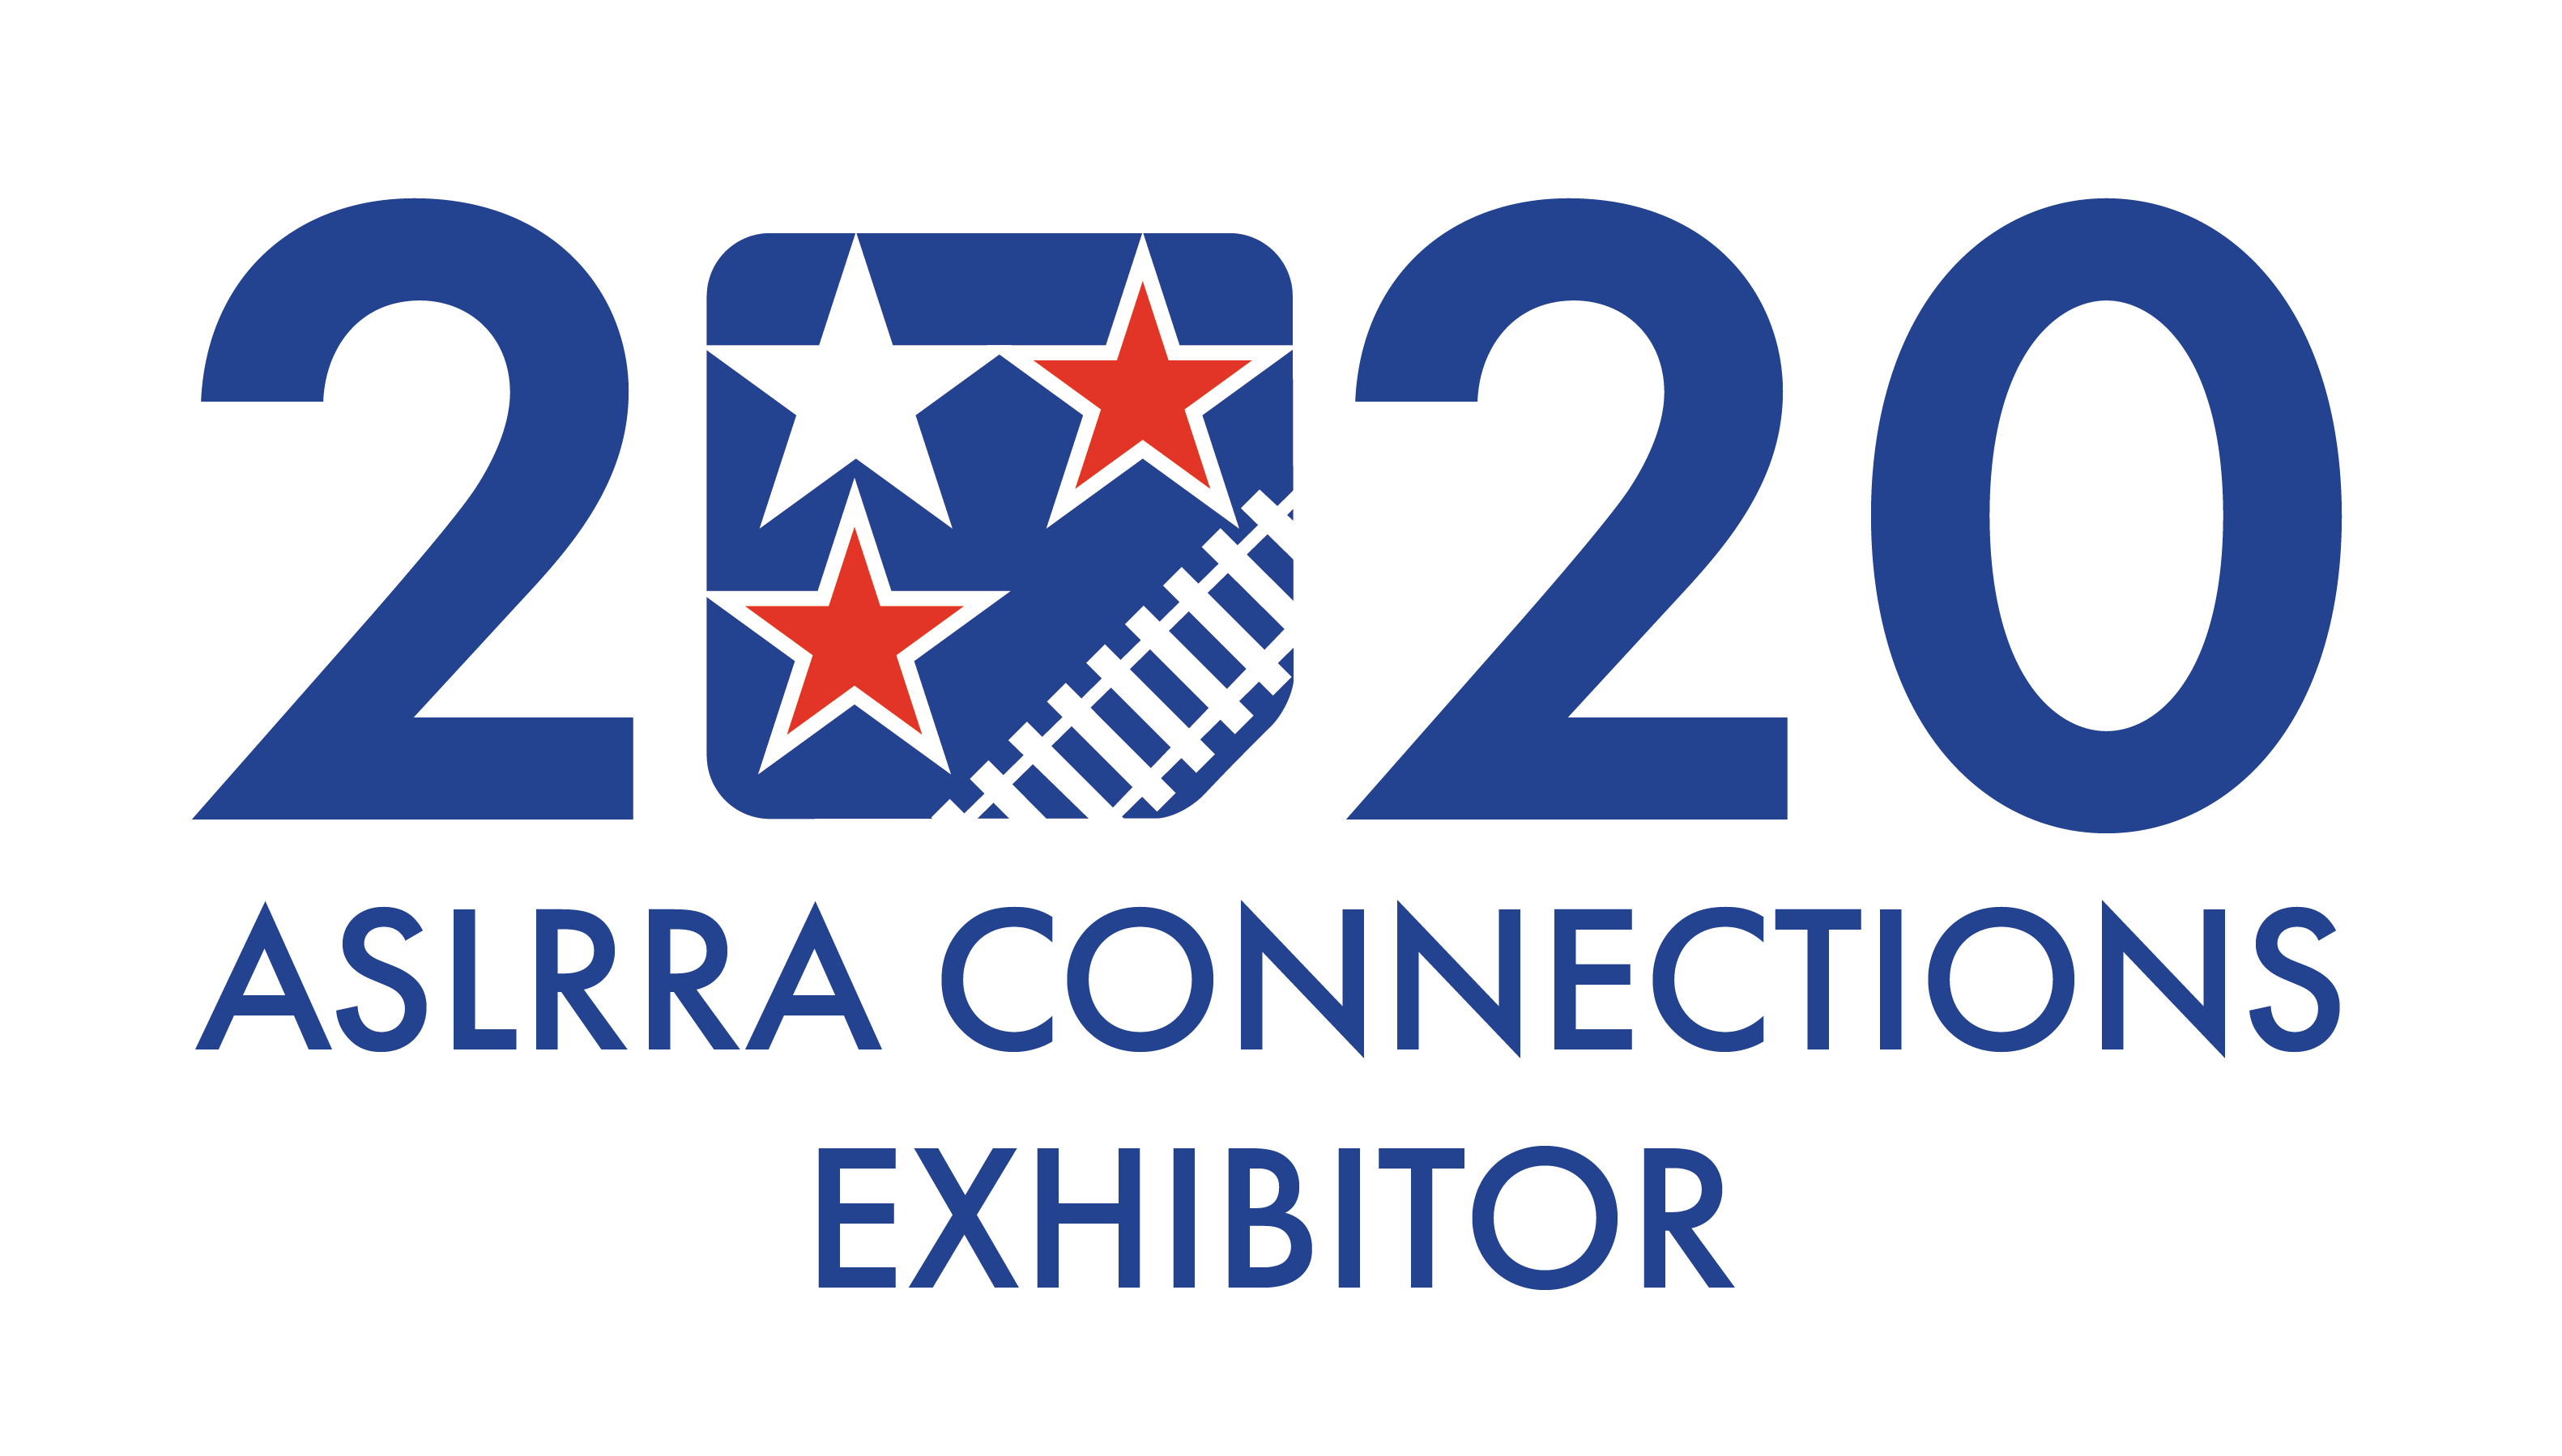 ASLRRA Annual Connections 2020